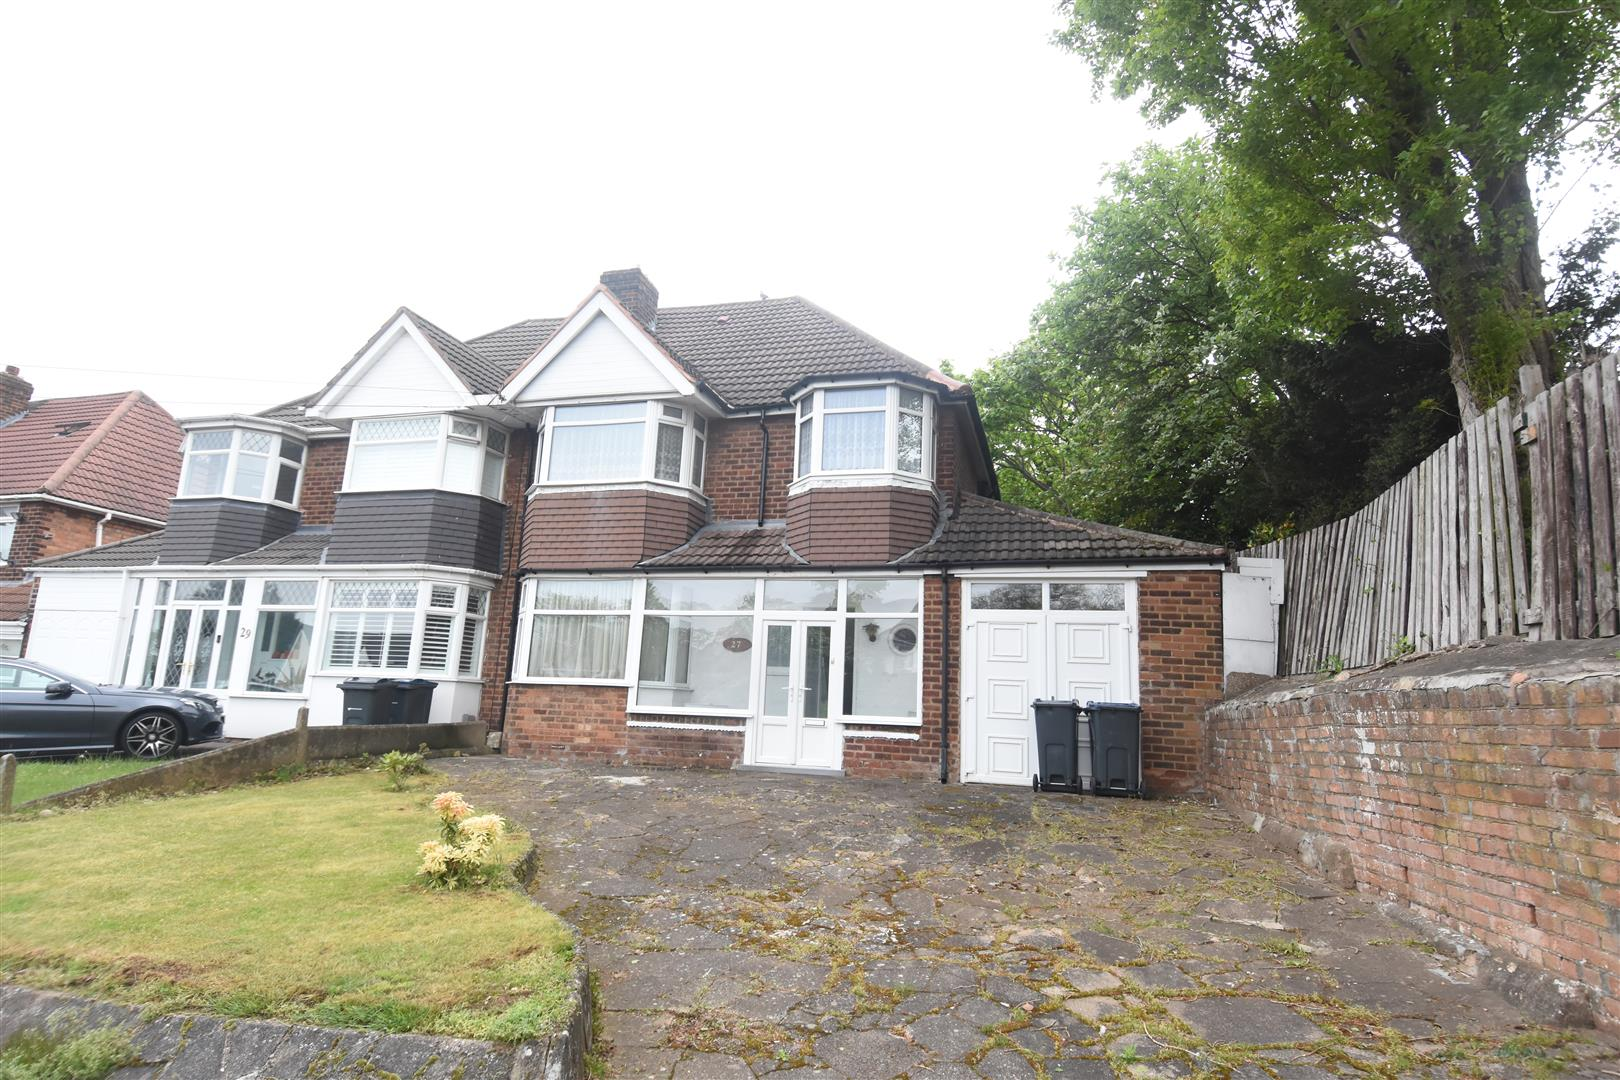 3 bed house for sale in Old Bromford Lane, Ward End, Birmingham, B8